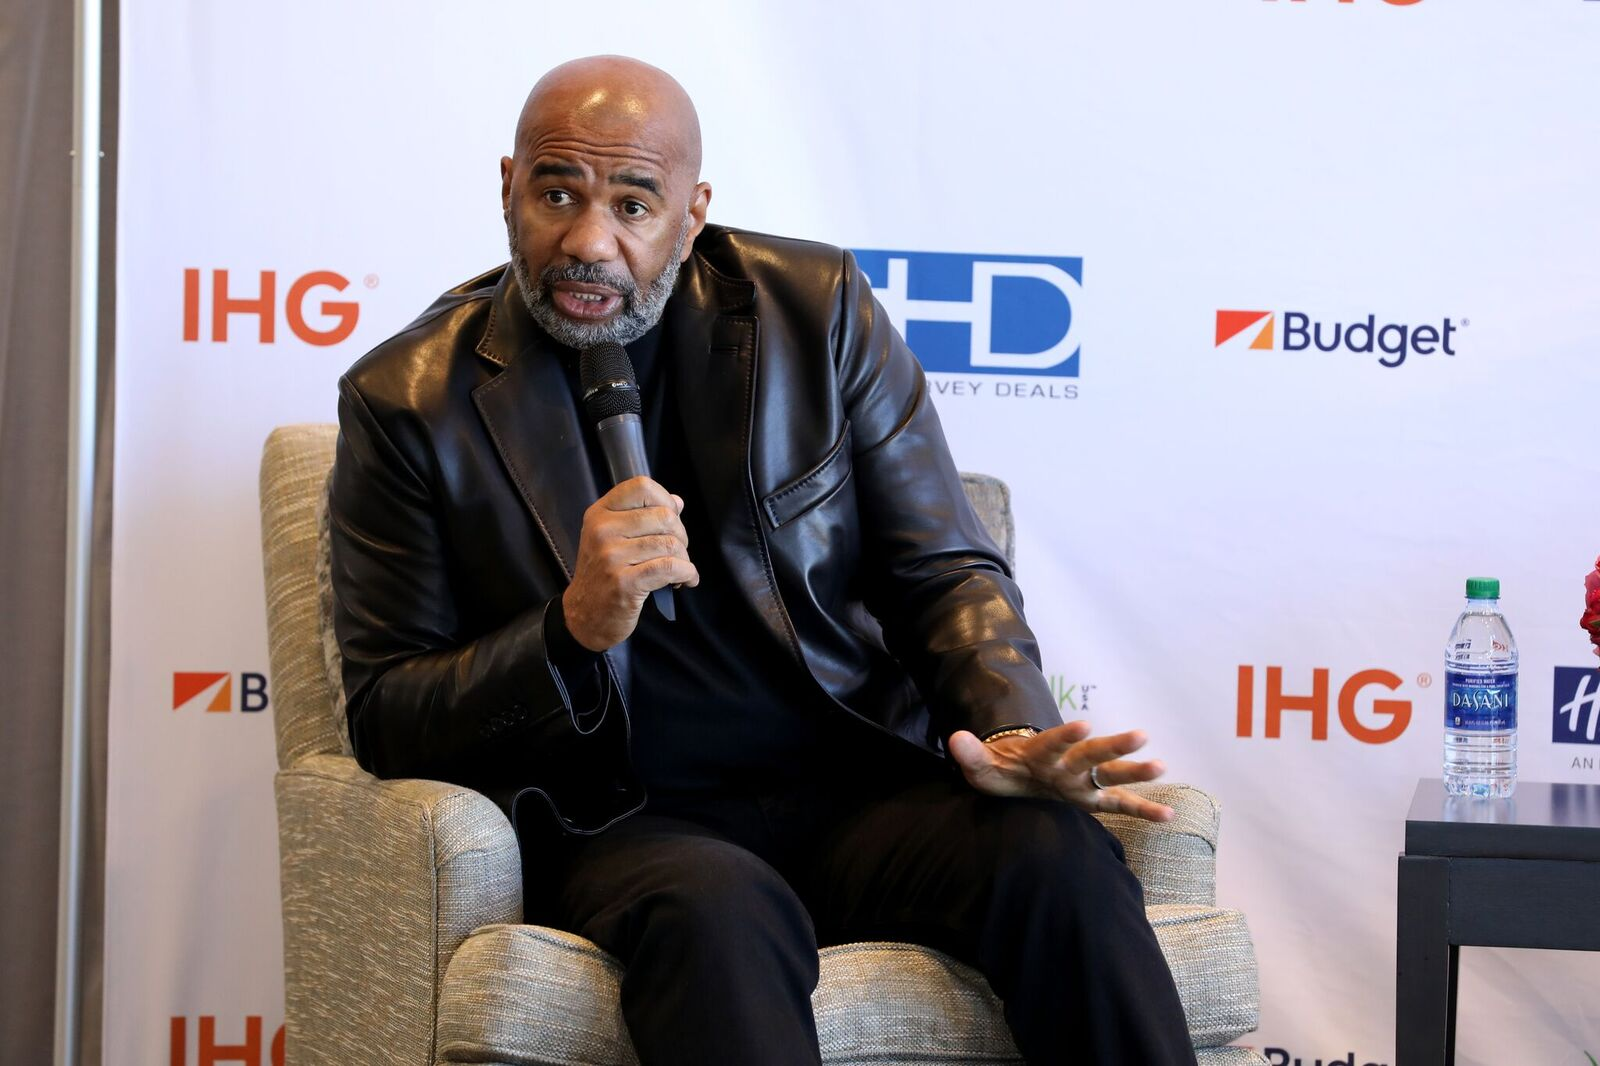 Steve Harvey announces his new business venture SteveHarveyDeals.com at Atlanta Crowne Plaza Hotel on February 02, 2019 | Photo: Getty Images